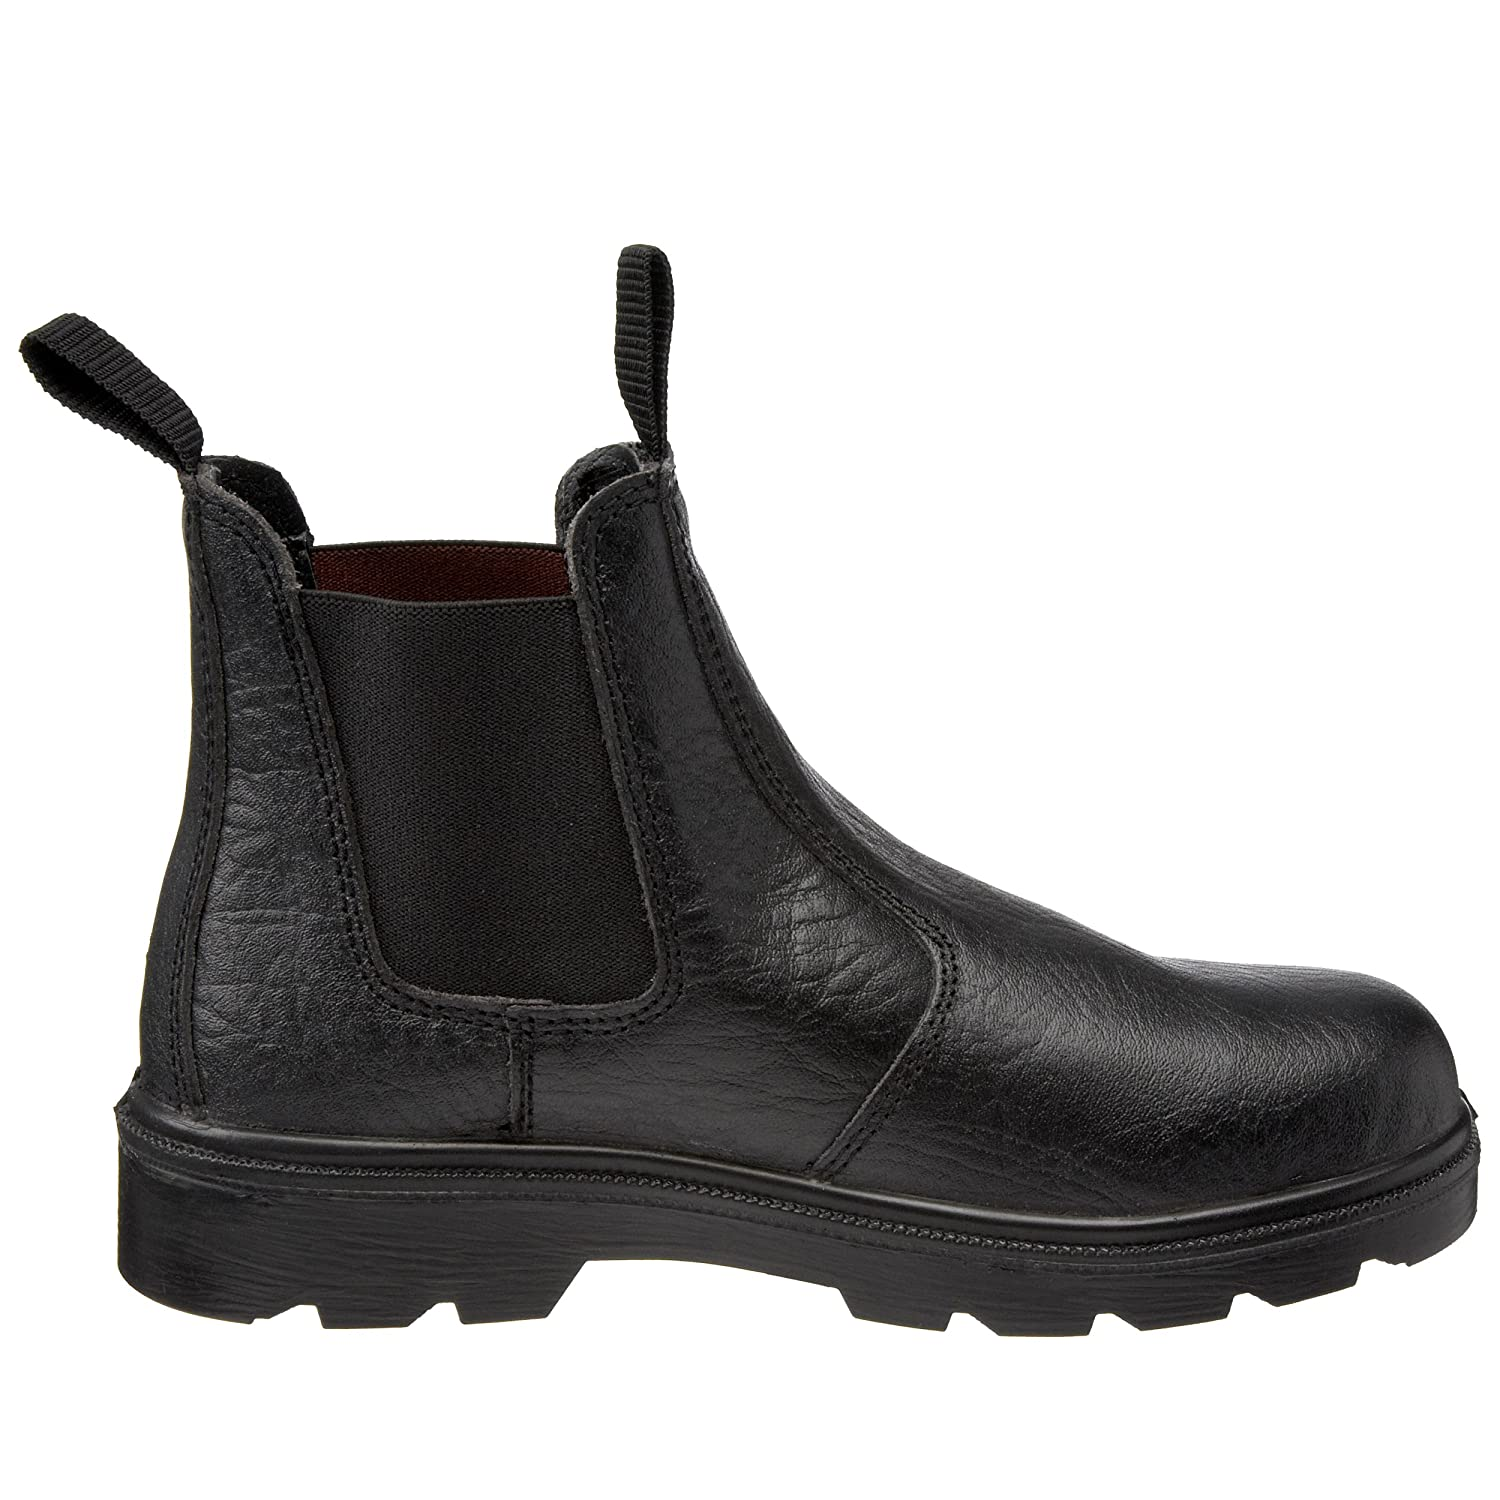 Workforce 17P S1P Puntale In Acciaio Boots Maschile, 46 EU